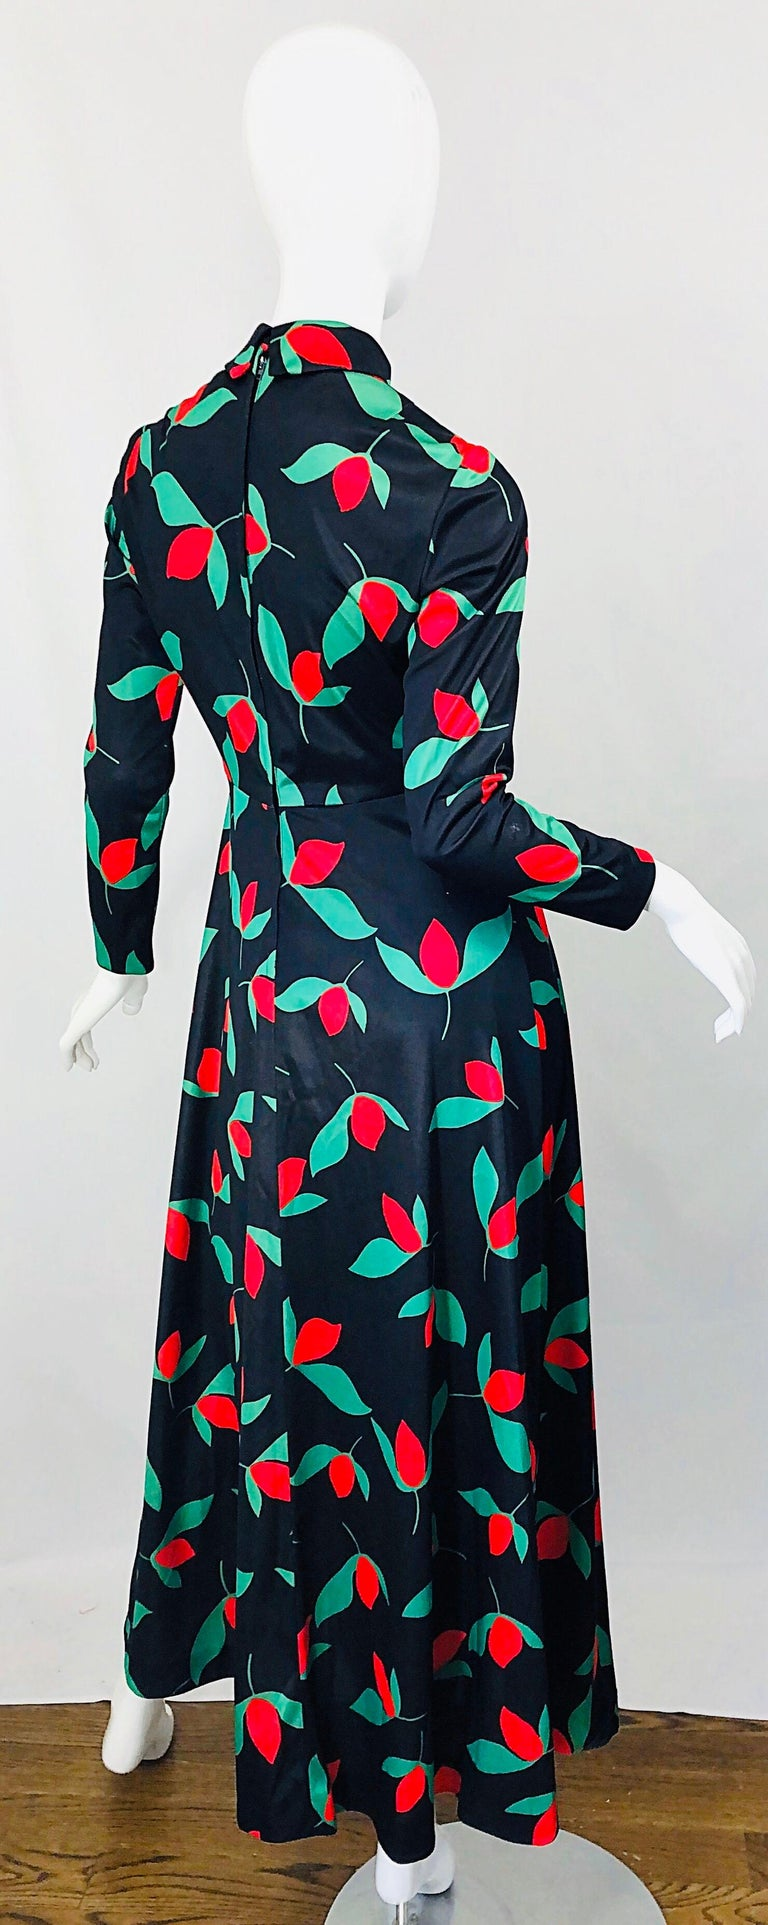 Women's 1970s Emilio Borghese Tulip Print Black + Green + Red Vintage 70s Maxi Dress For Sale